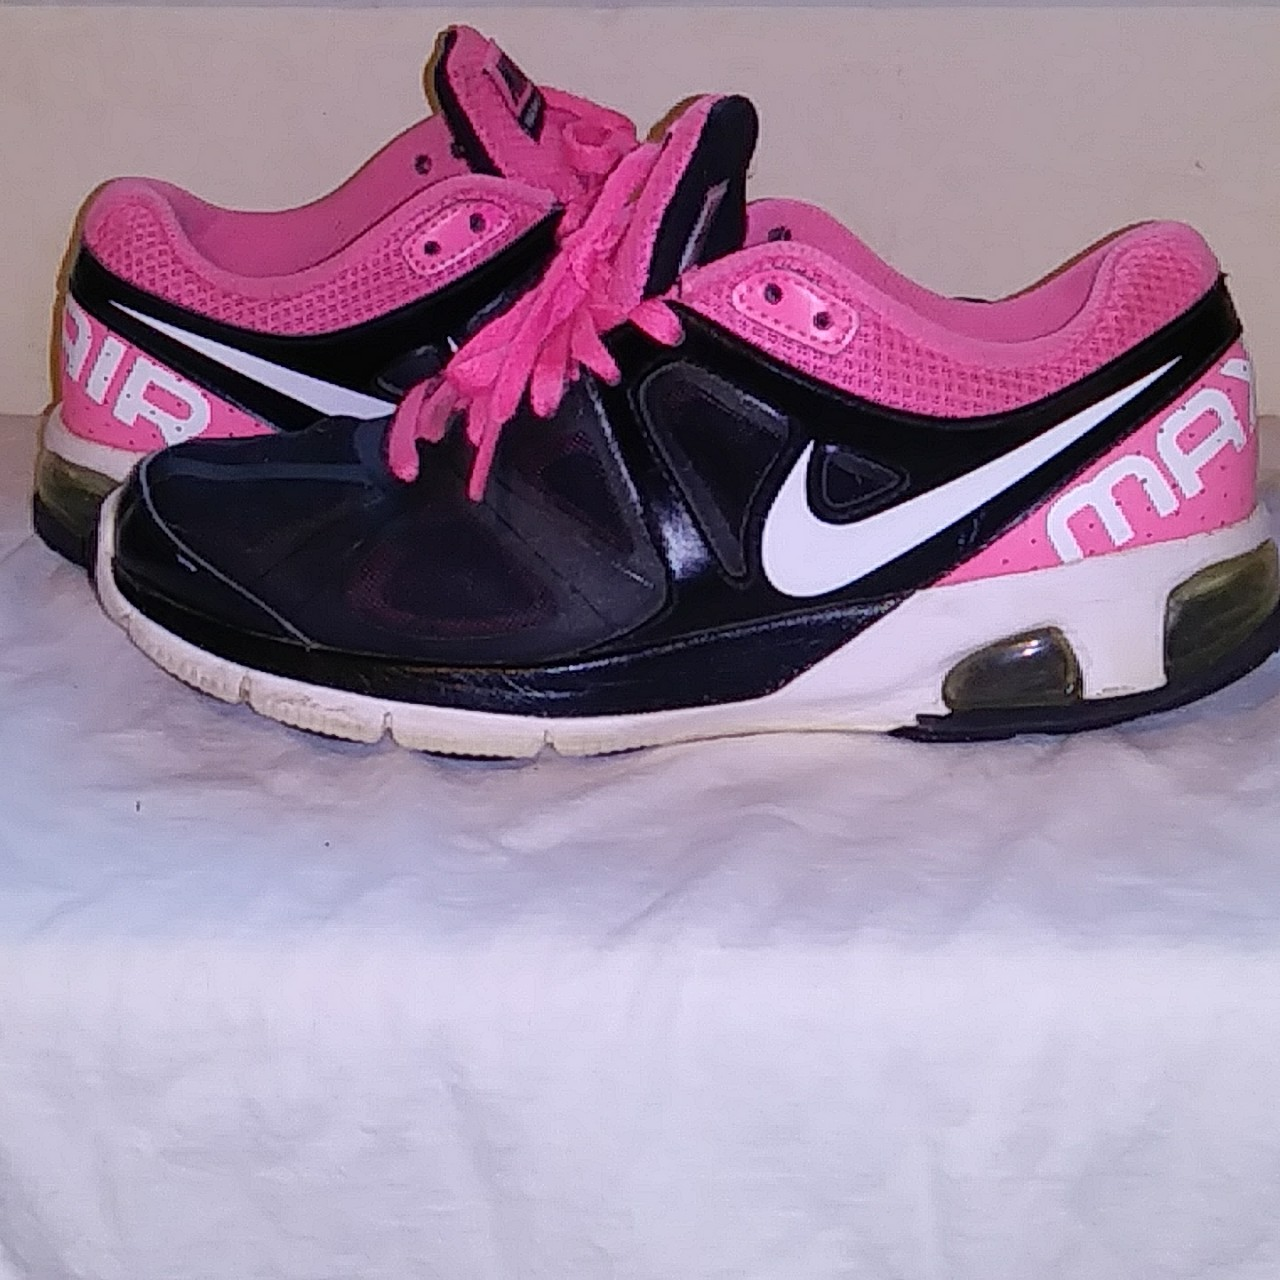 Women's 2012 Nike Air Max Run Lite 4 Running Shoes